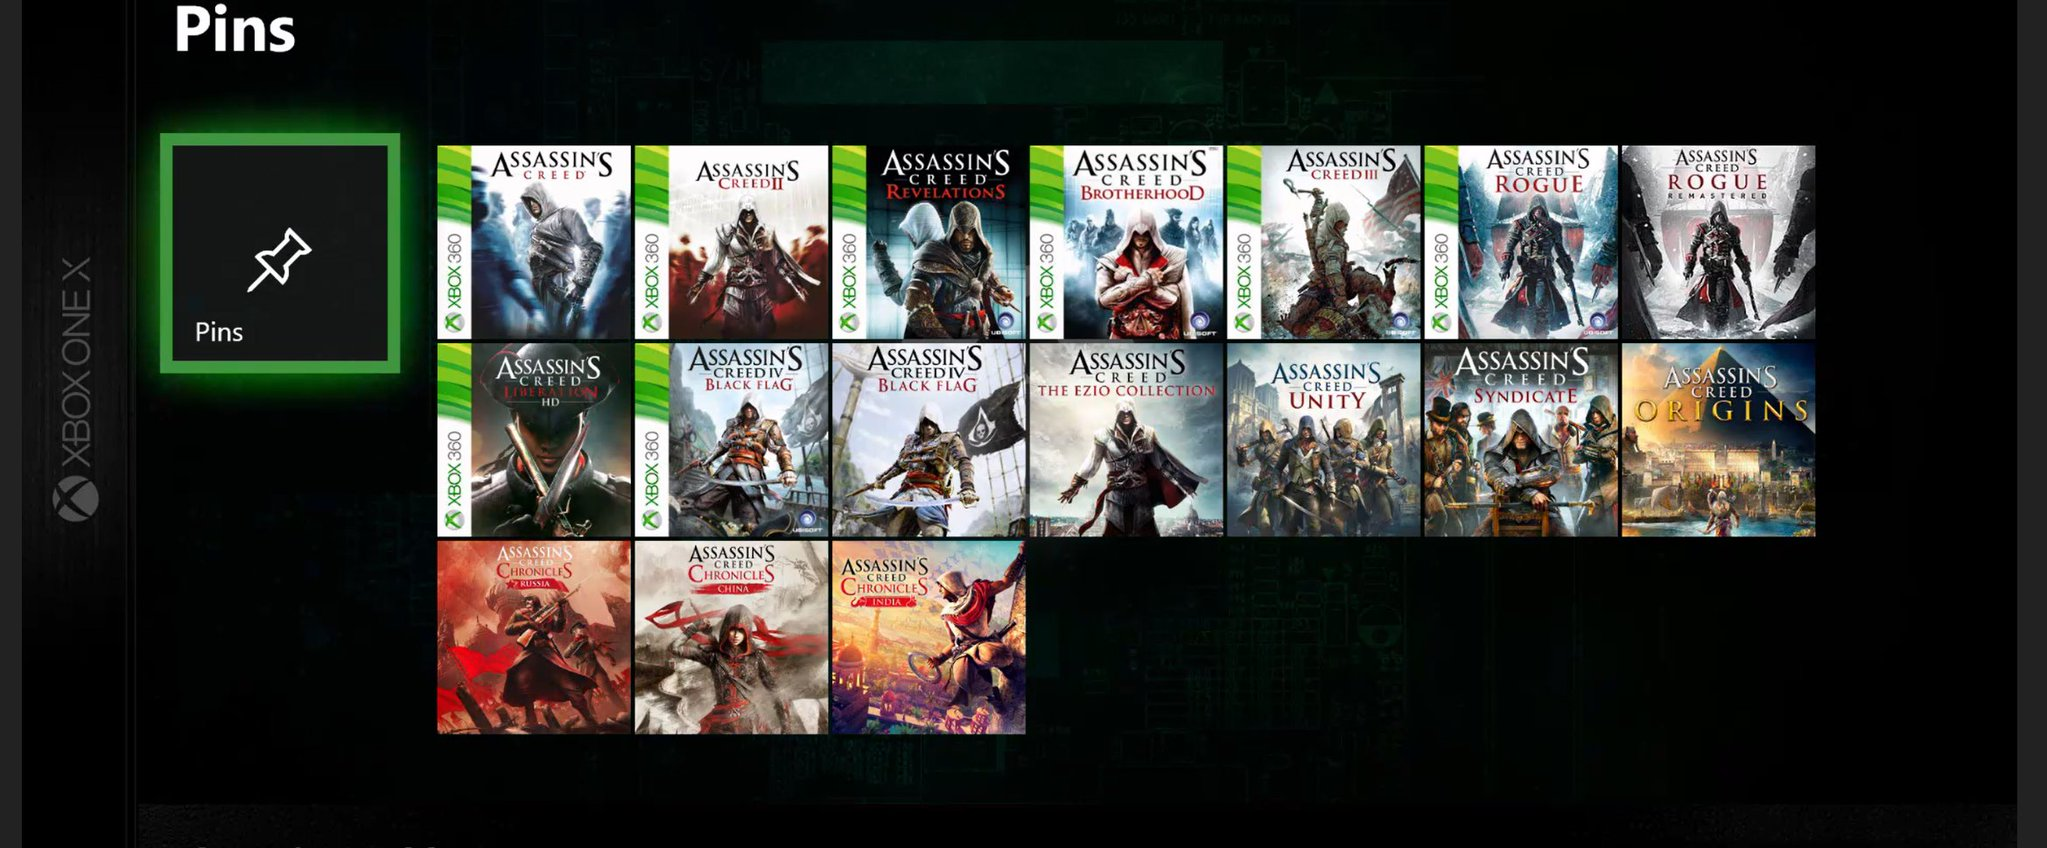 Xbox One Now Has The Entire Assassin S Creed Series Playable And More